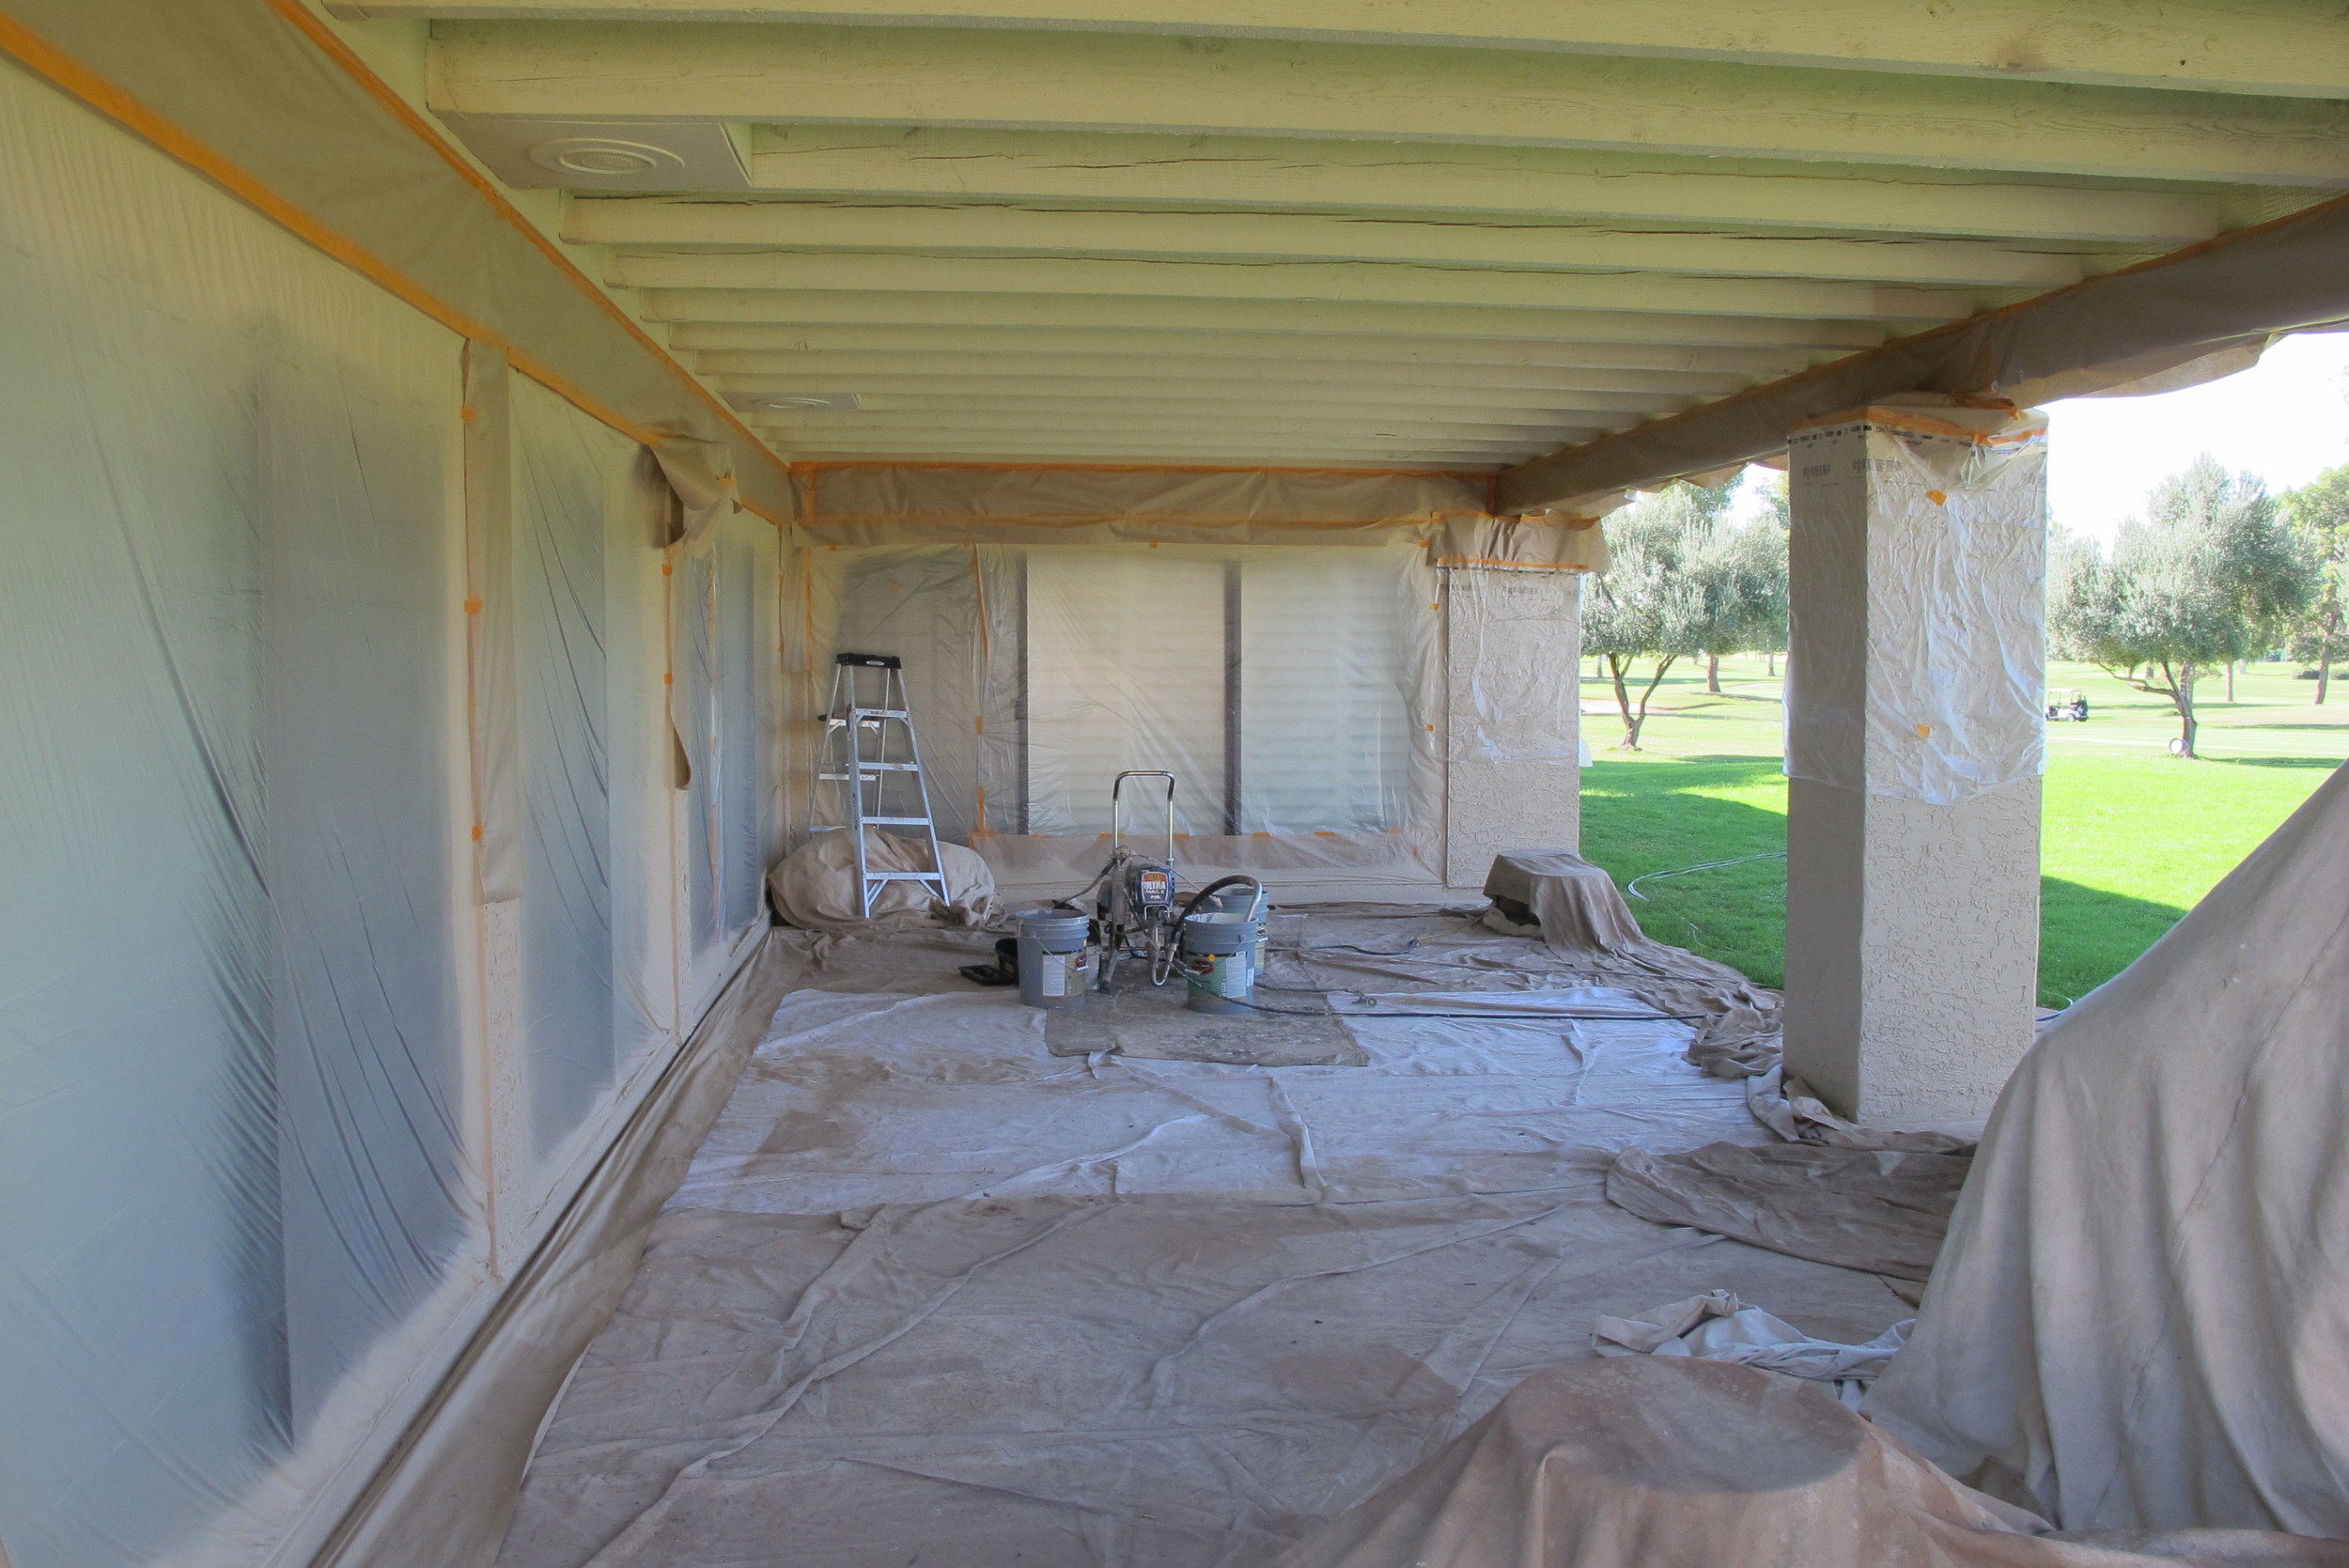 Surfaces are carefully masked to prevent overspray